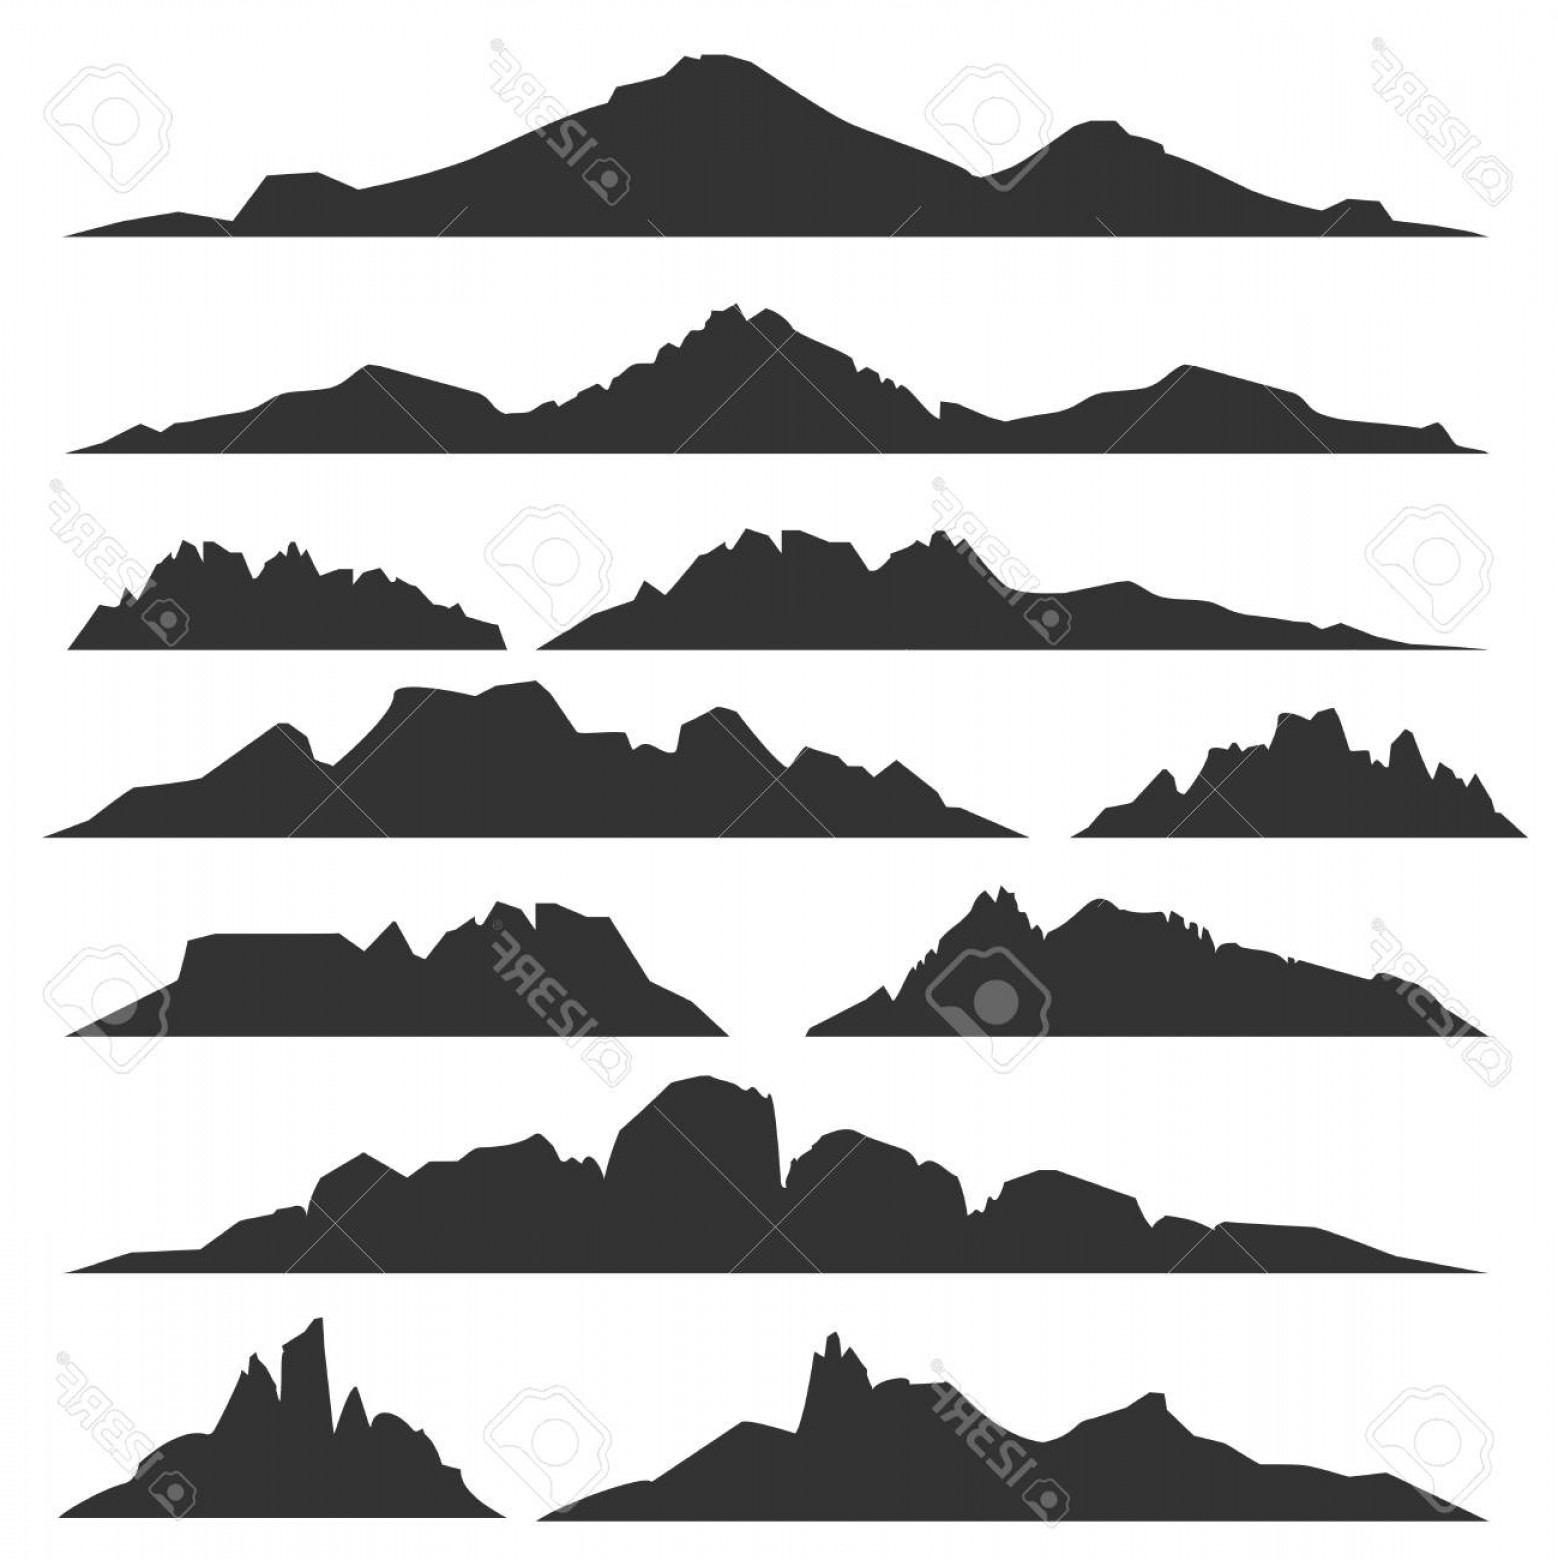 White Mountain Silhouette Vector Free: Photostock Vector Mountain Silhouettes Overlook Vector Rocky Hills Terrain Vector Mountains Silhouette Set Isolated On